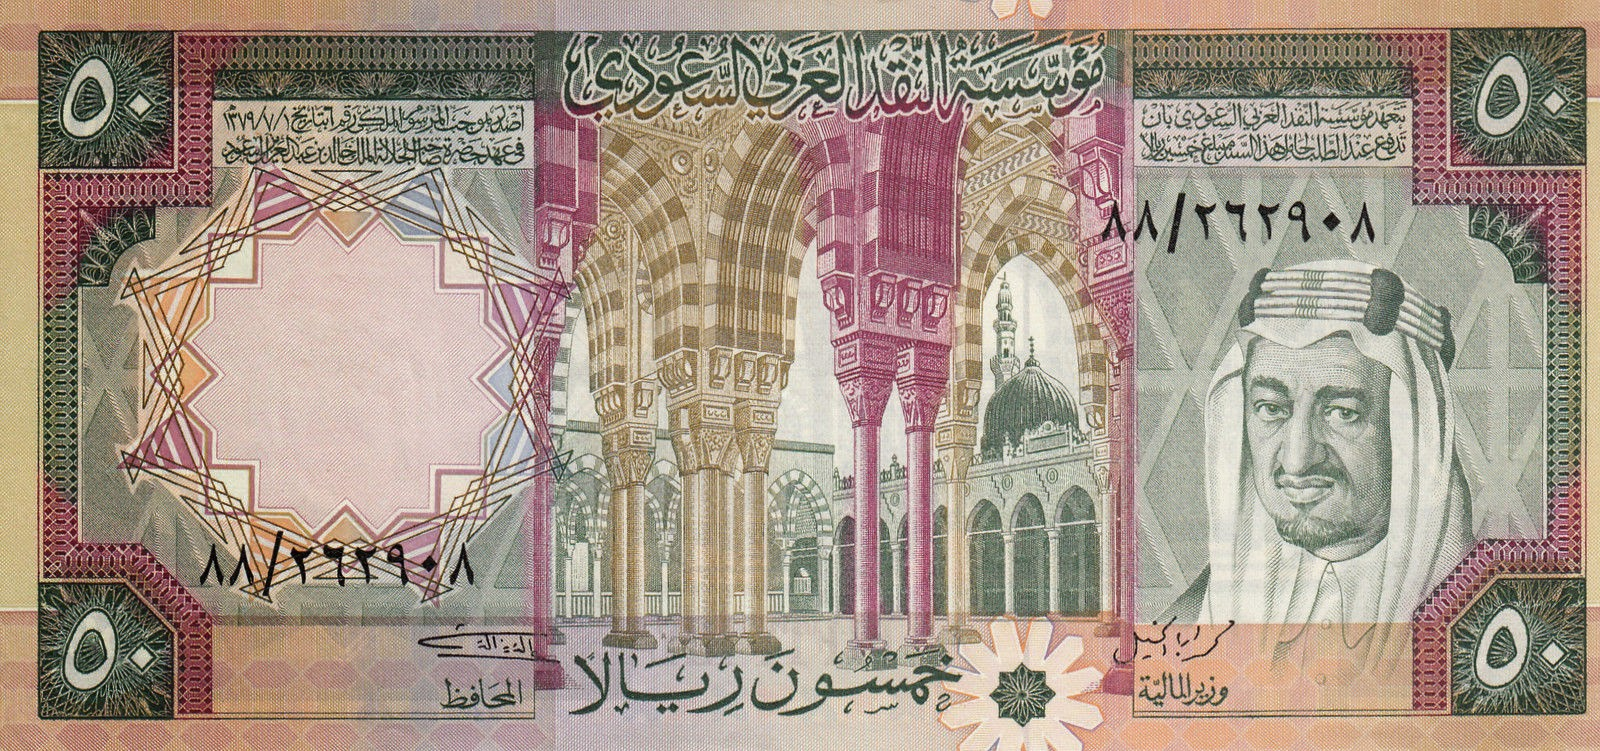 Saudi Arabia banknotes 50 Riyal note 1976